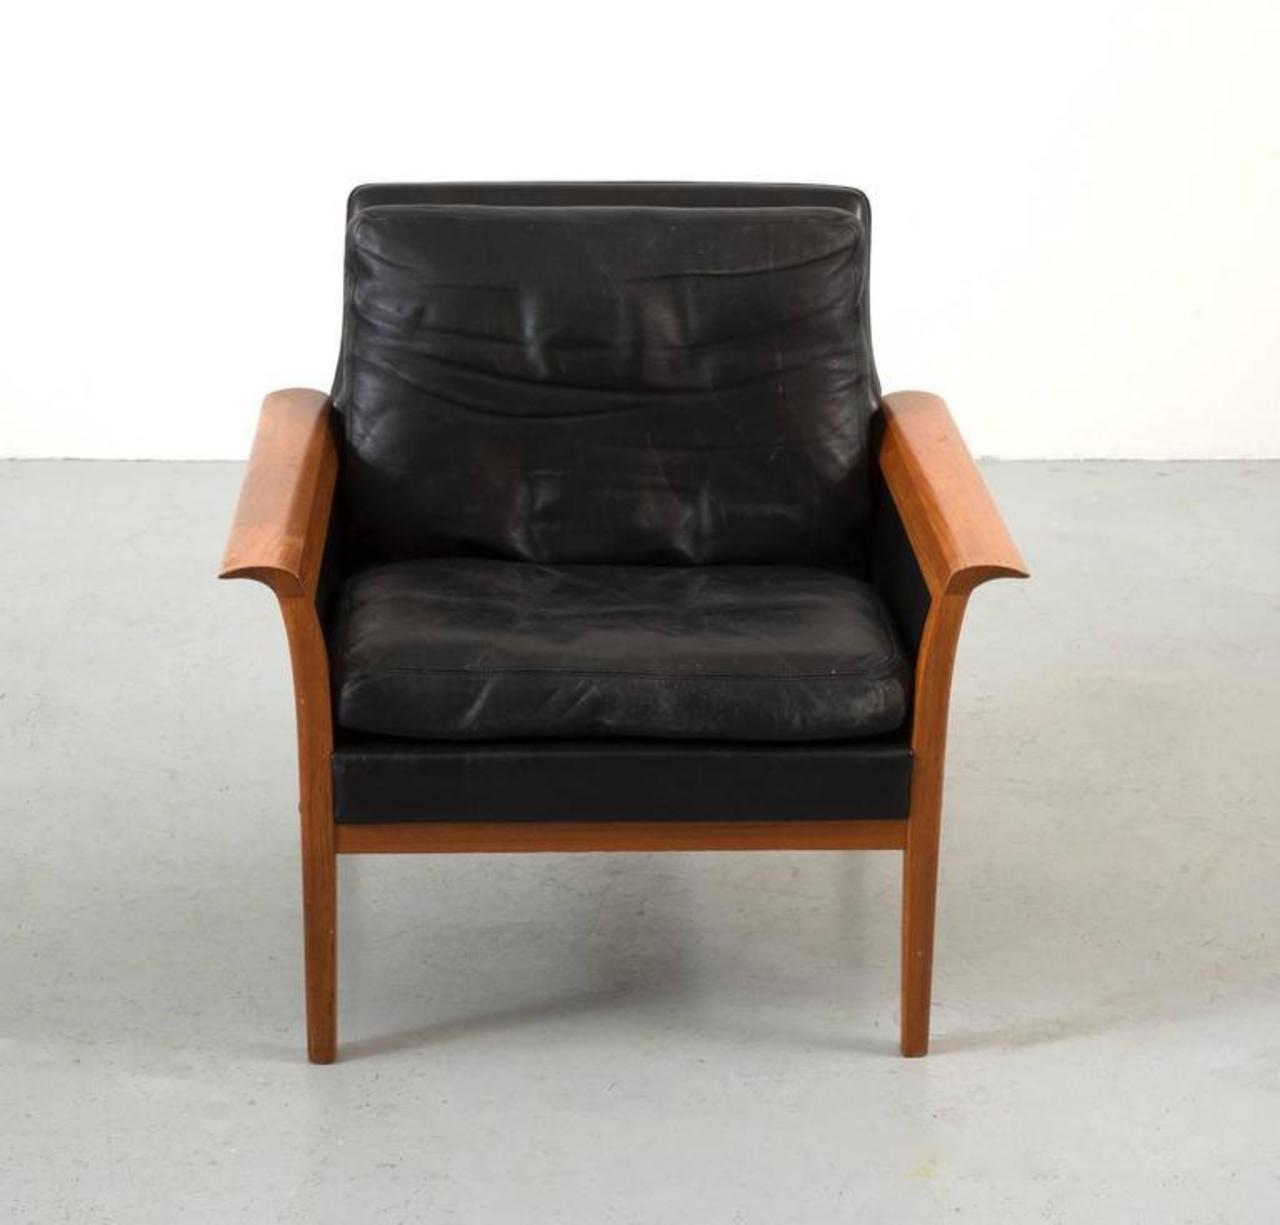 Hans Olsen Teak And Leather Lounge Chair   Image 2 Of 10